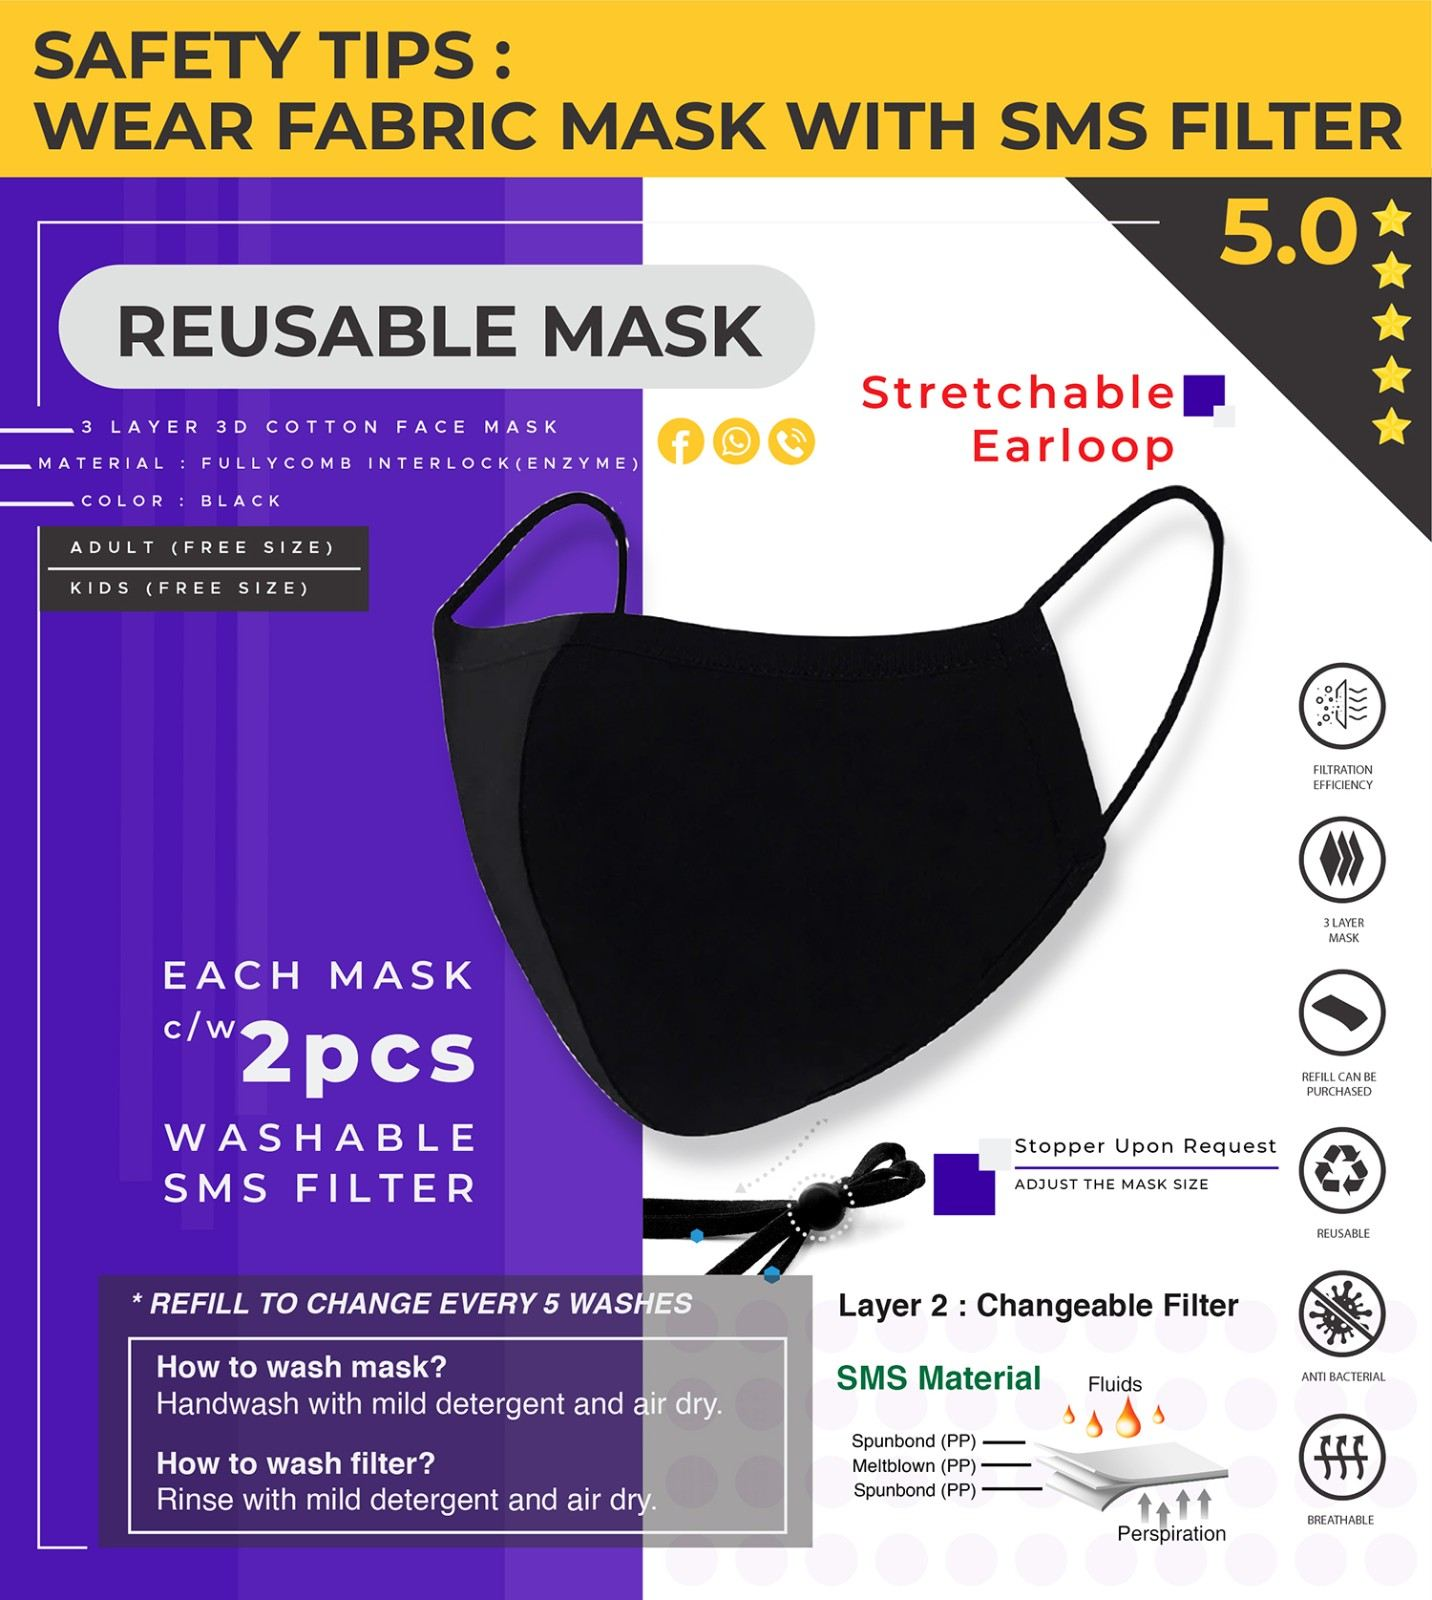 Reusable WashableFace Mask + Virus SMS Filter Sheet 】SMS 99% Anti Bacterial / Face Mask 3 layers Reusable Washable | 5.0